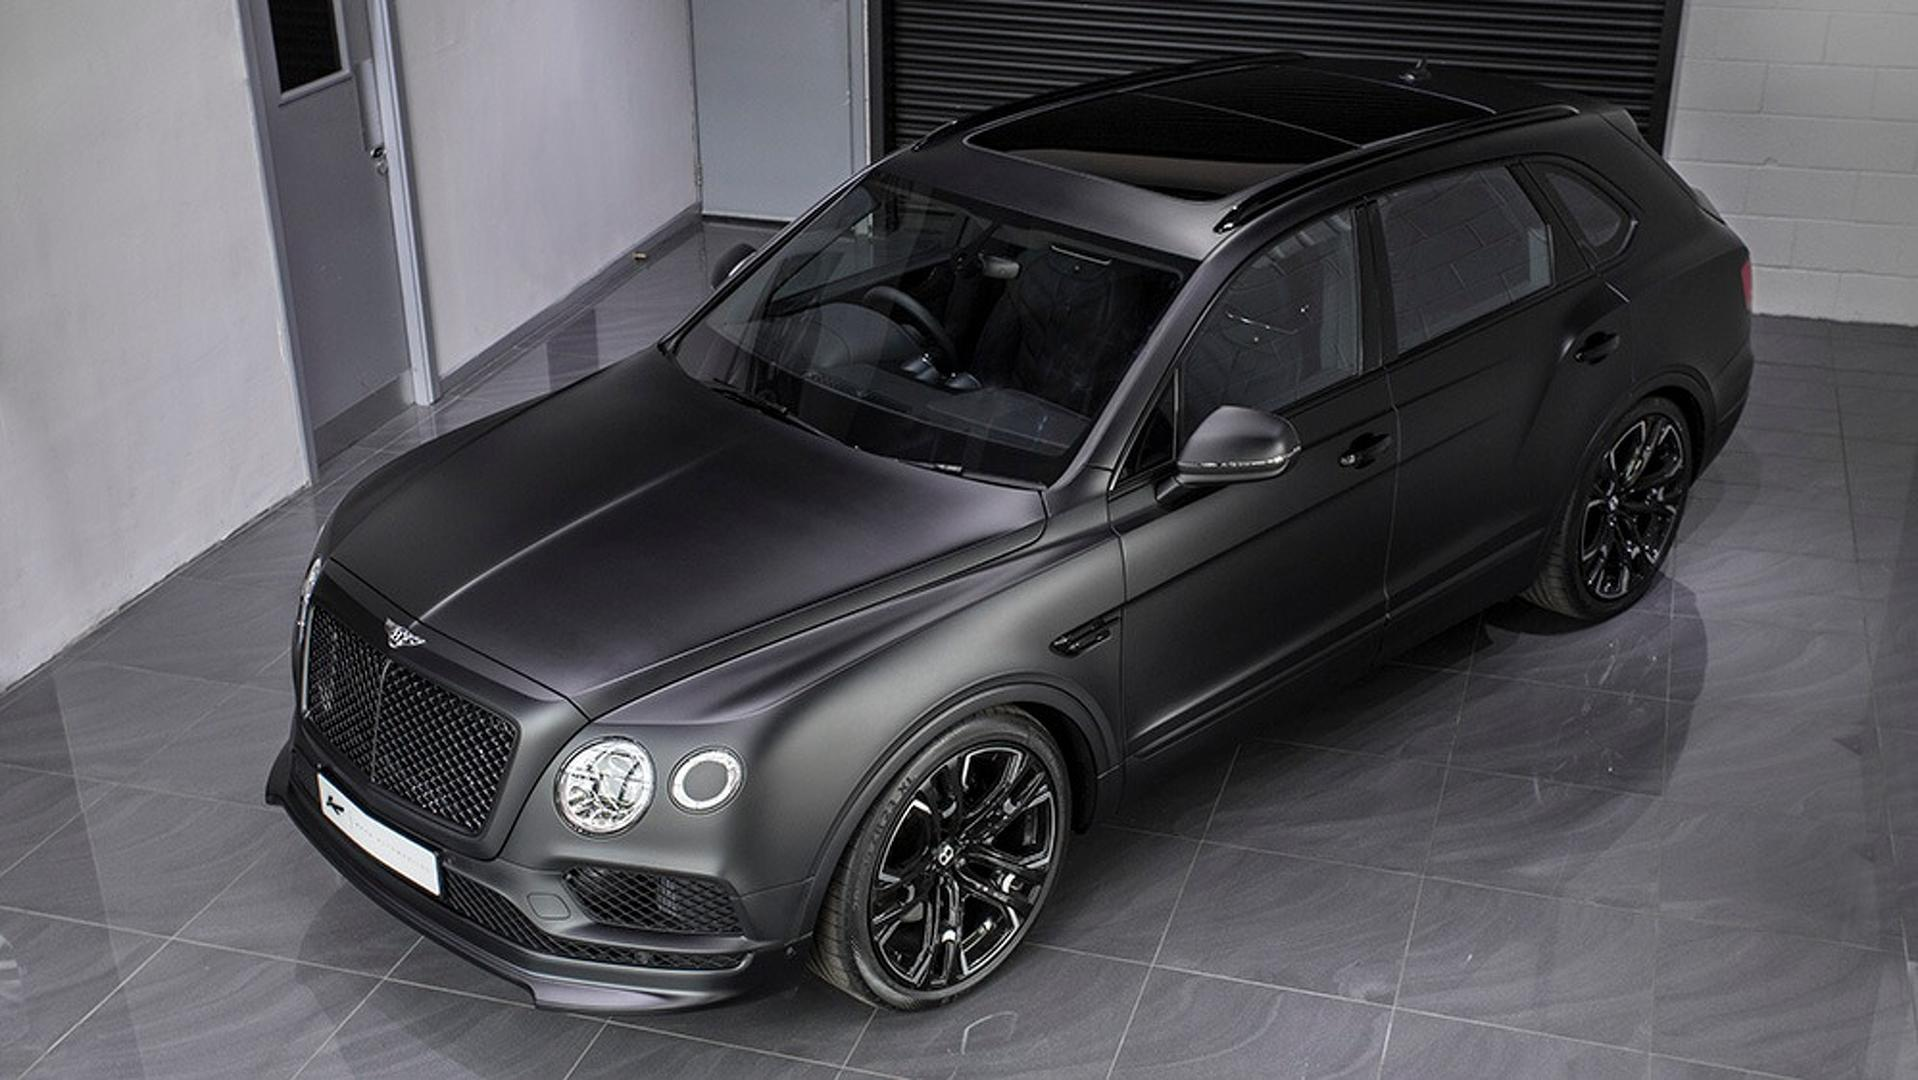 bentley-bentayga-le-mans-edition-by-kahn